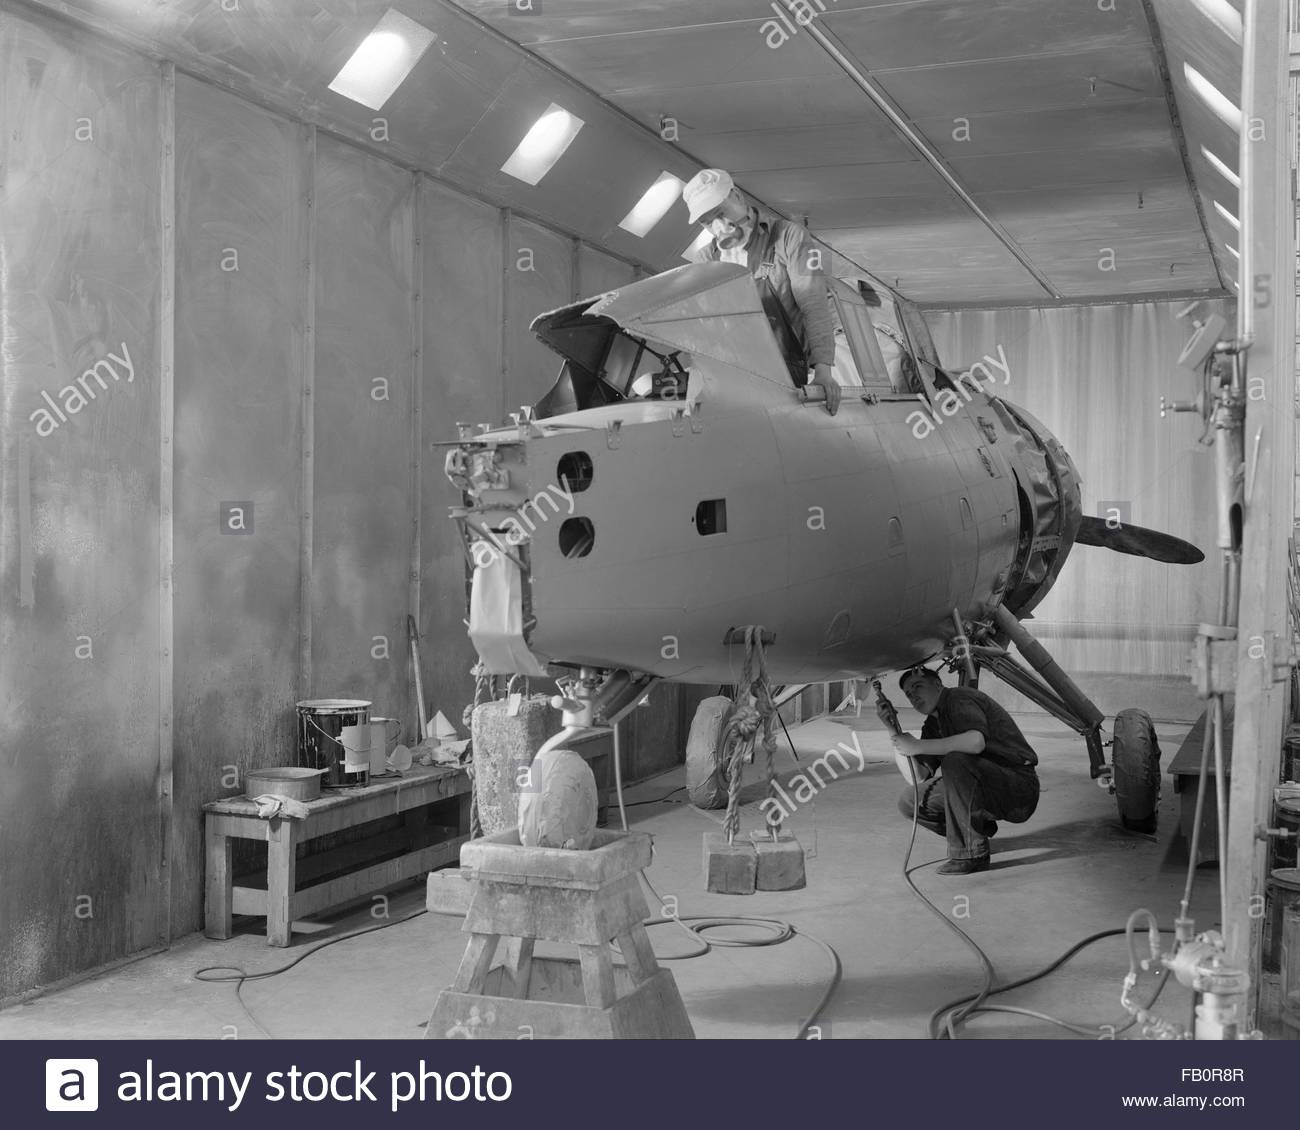 Curtiss-Wright plant in Buffalo (N. Y.), 1939 Apr. 12. Interior, building of an airplane. - Stock Image